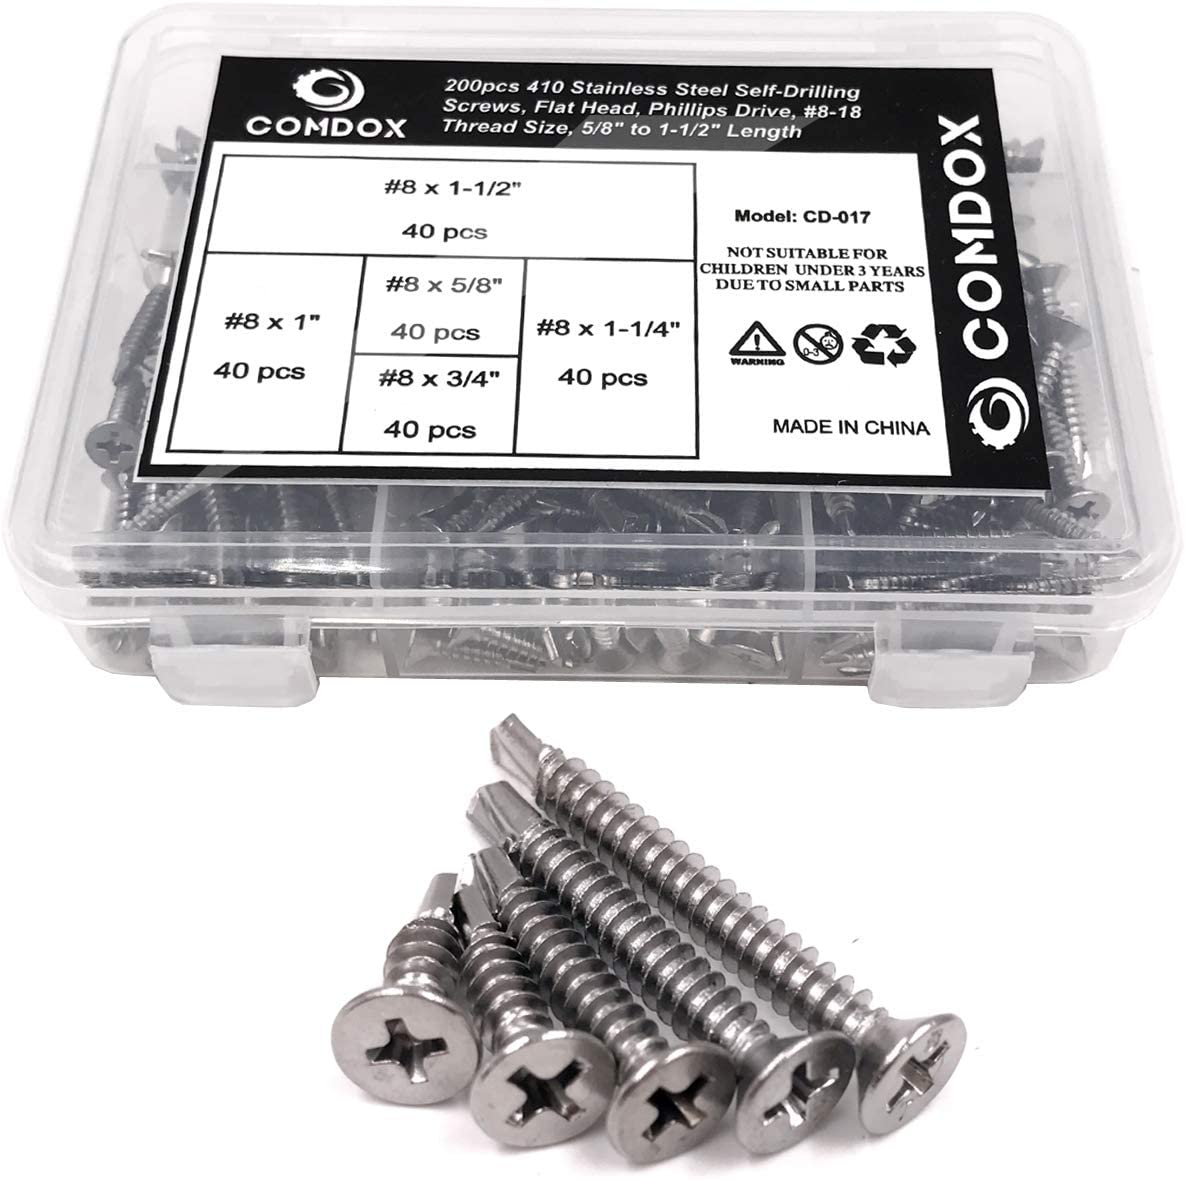 Hilitchi 410 Stainless Steel Pan Head Phillips Self Drilling Screws Sheet Metal Tek Screws Assortment Kit Size: #8 x 1//2 to #8 x 1-1//2 Modified Truss Head Self Driller Pack of 240